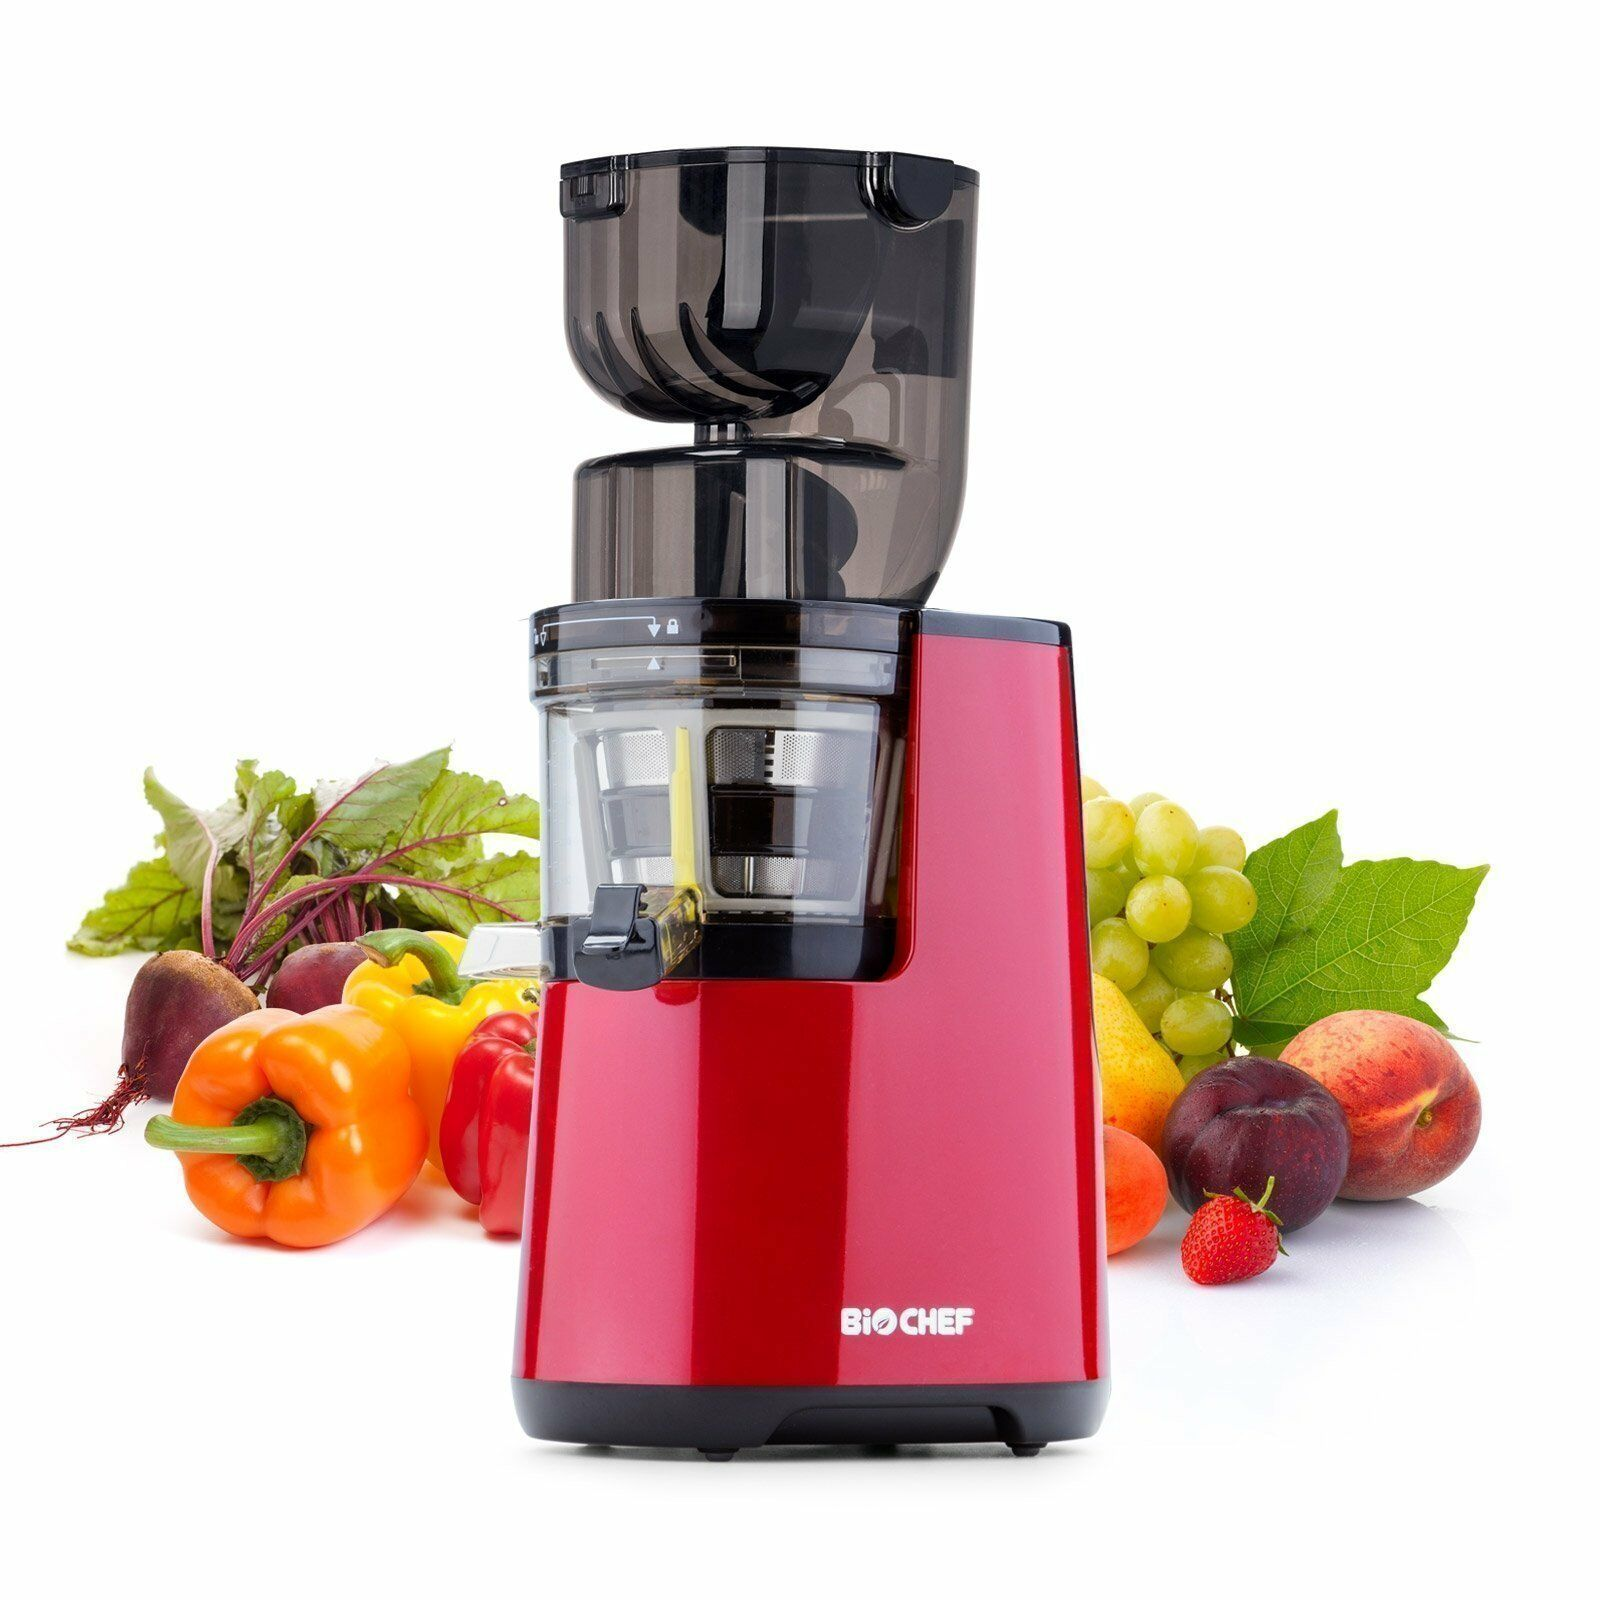 BioChef 300 W Max Rated Power slow juicer Ensemble Cold Press Juicer-Rouge